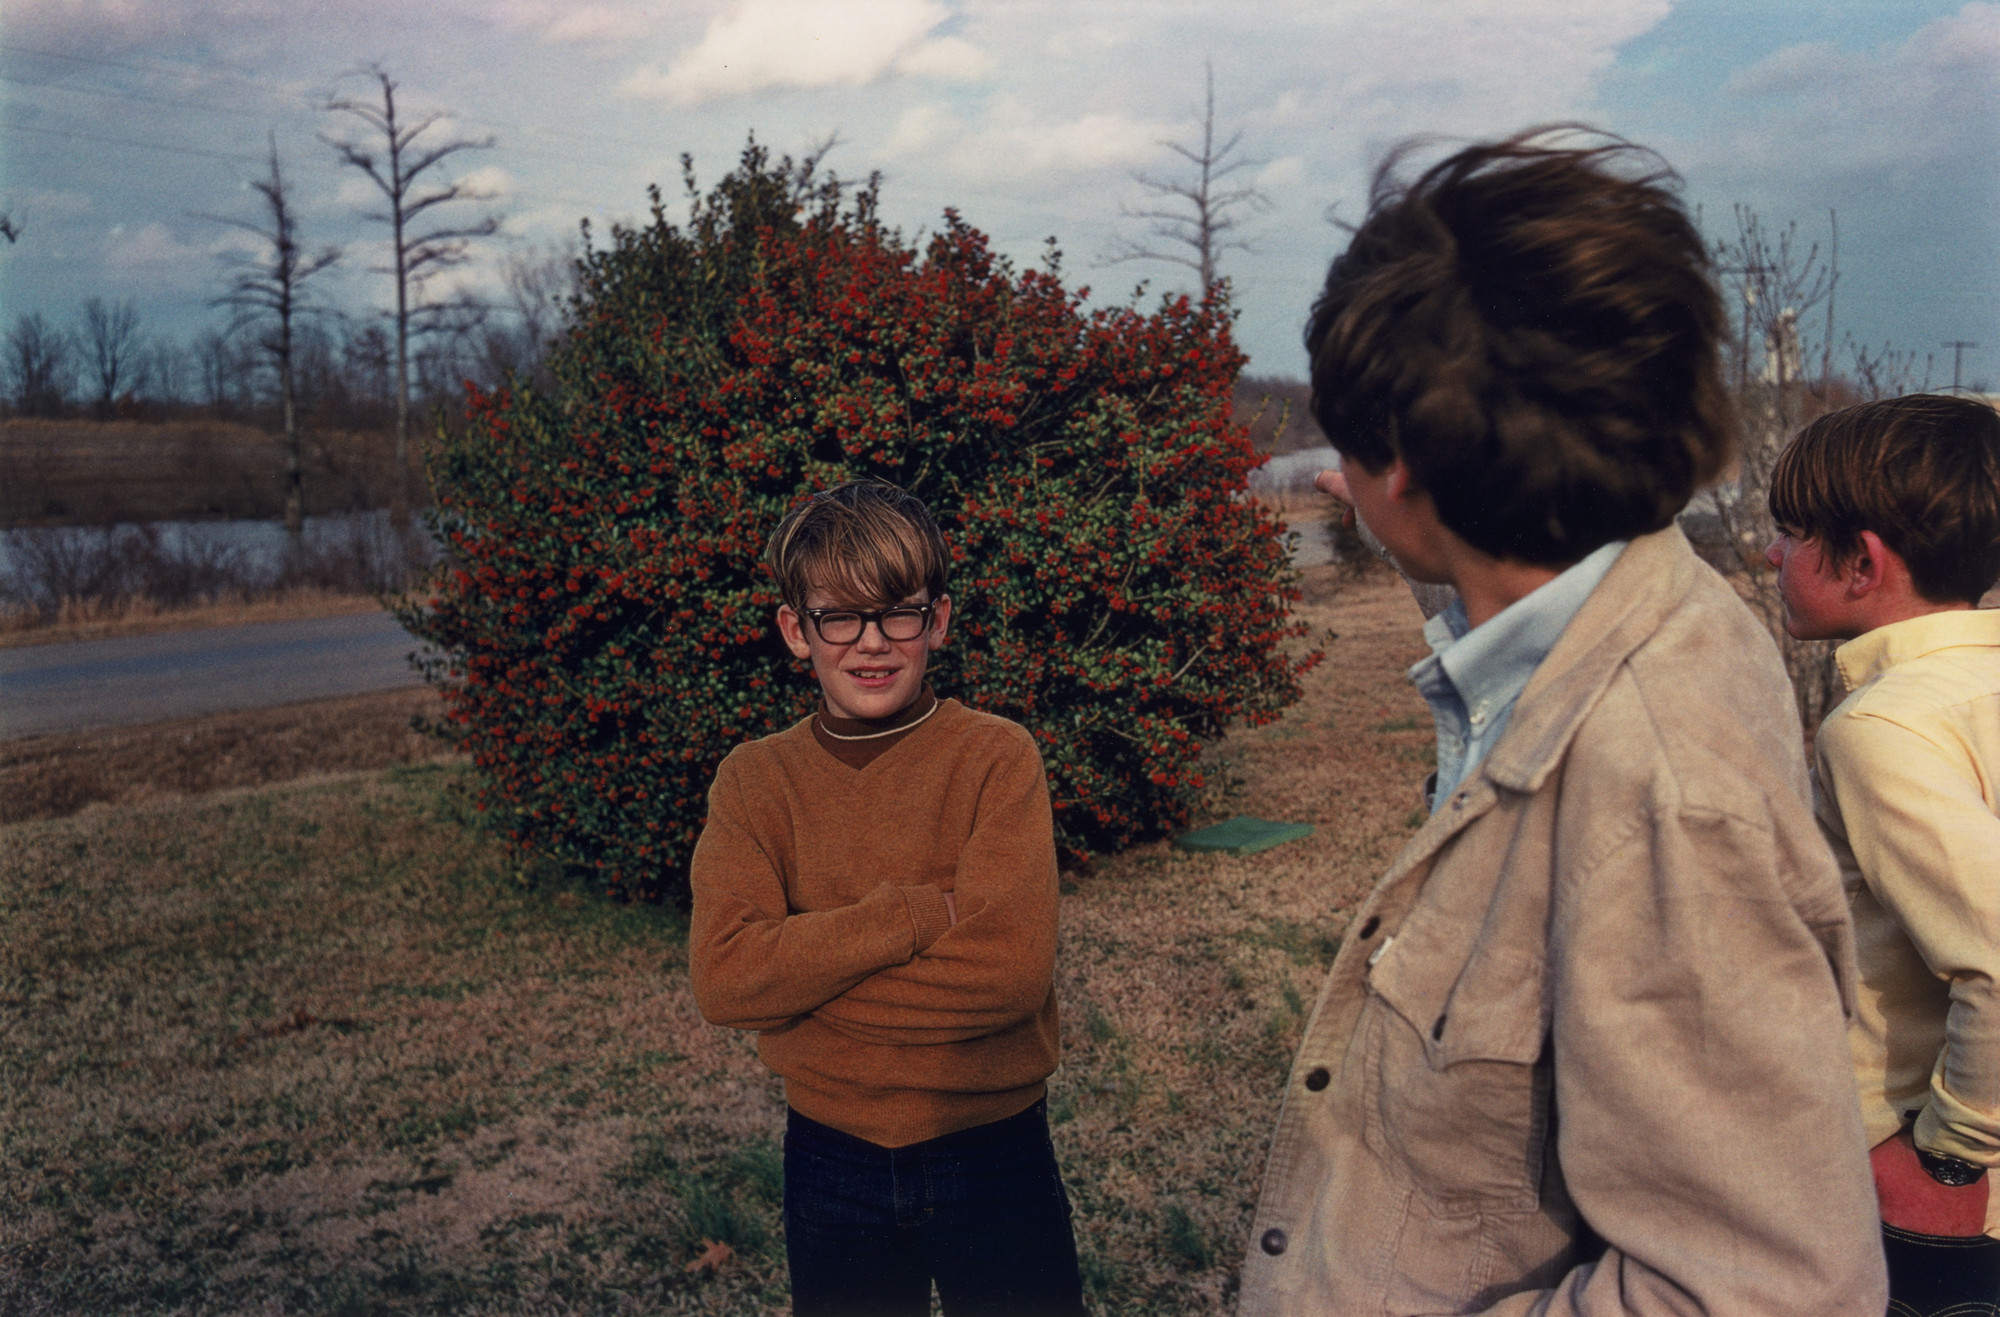 William Eggleston. Tallahatchie County, Mississippi. c. 1972